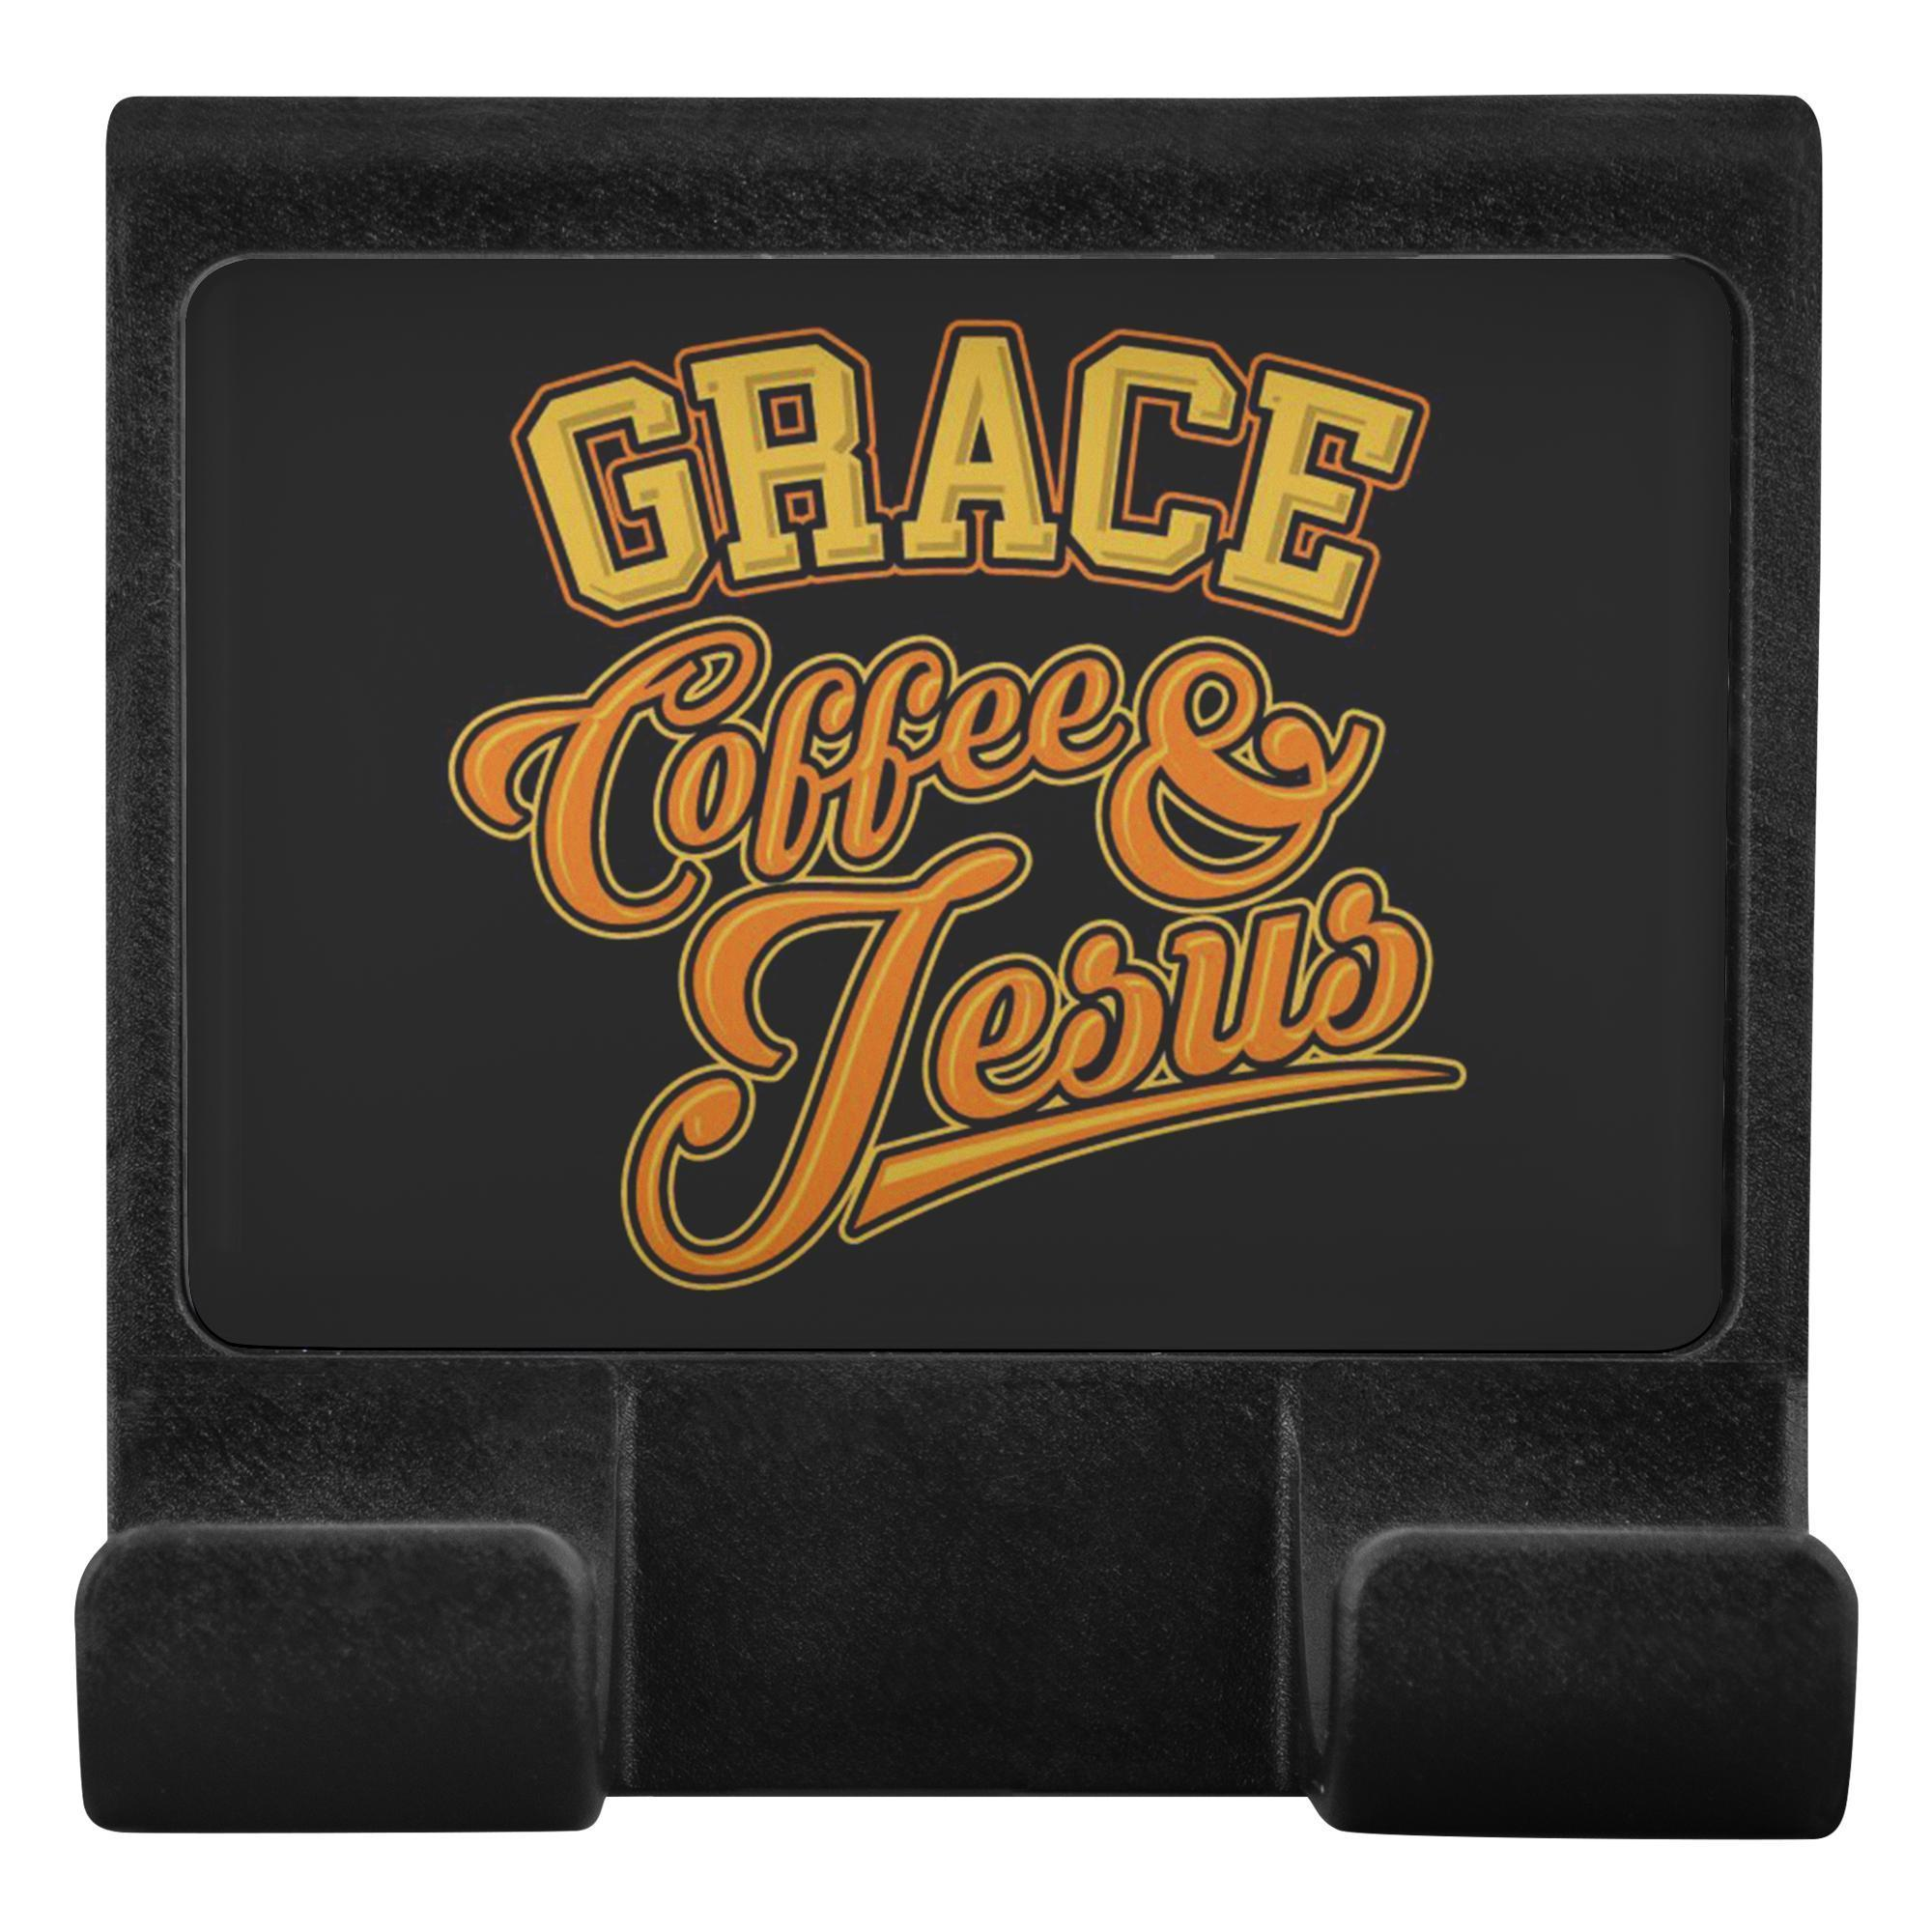 Grace Coffee & Jesus Christian Cell Phone Monitor Holder Laptop Desktop Display-Moniclip-Moniclip-JoyHip.Com